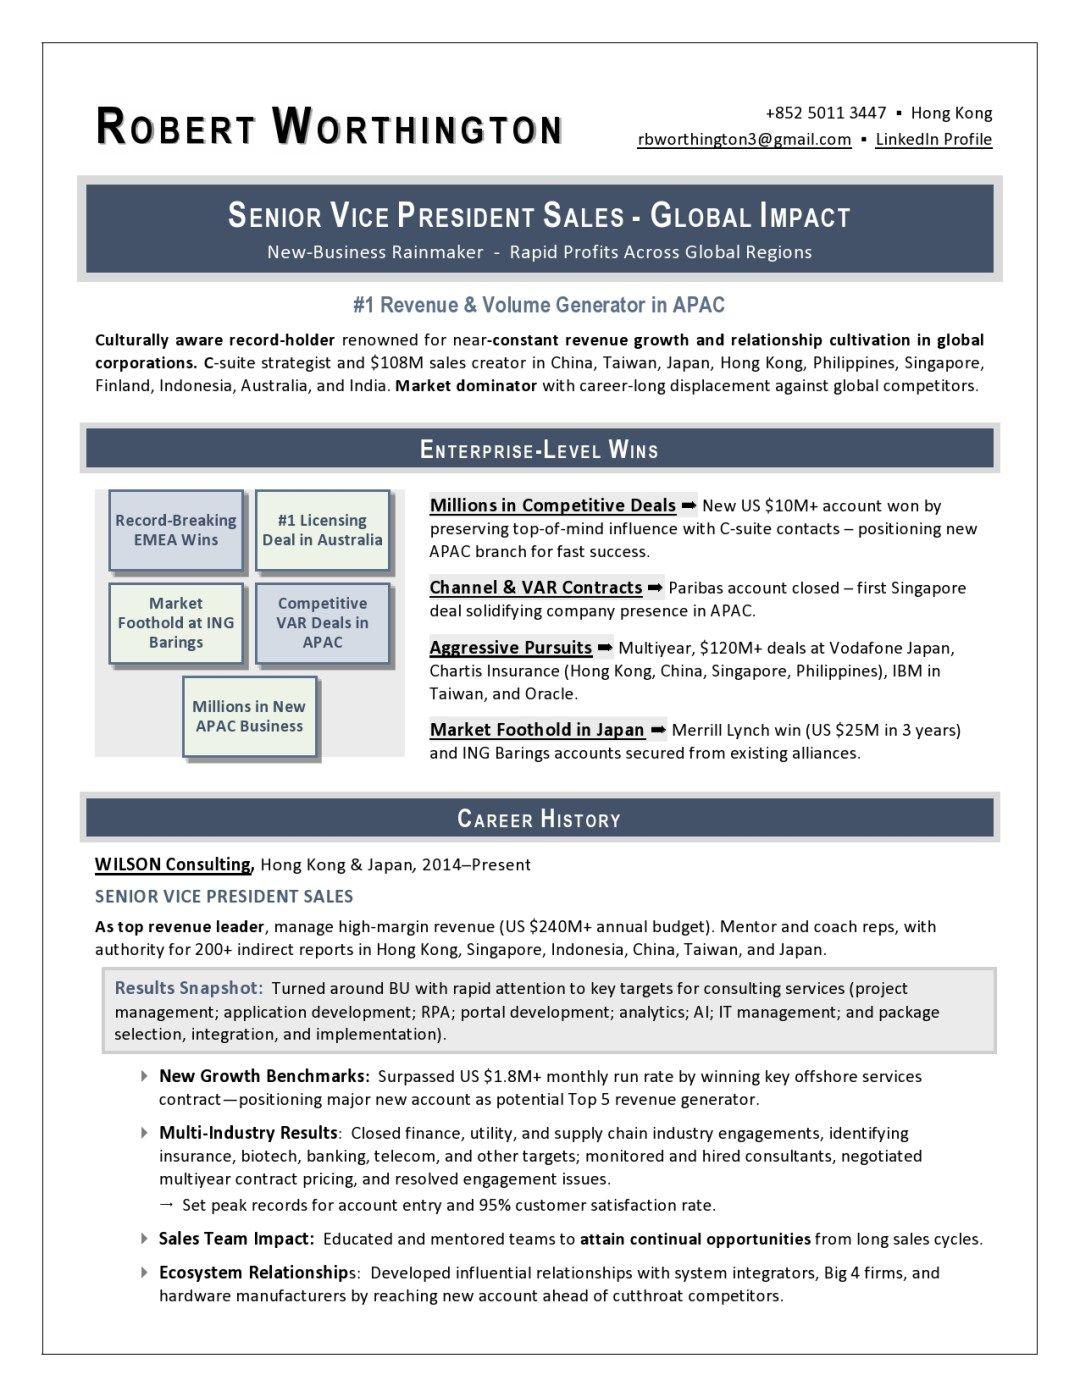 sample vp resume writing services executive level crisis intervention specialist Resume Executive Level Resume Writing Services